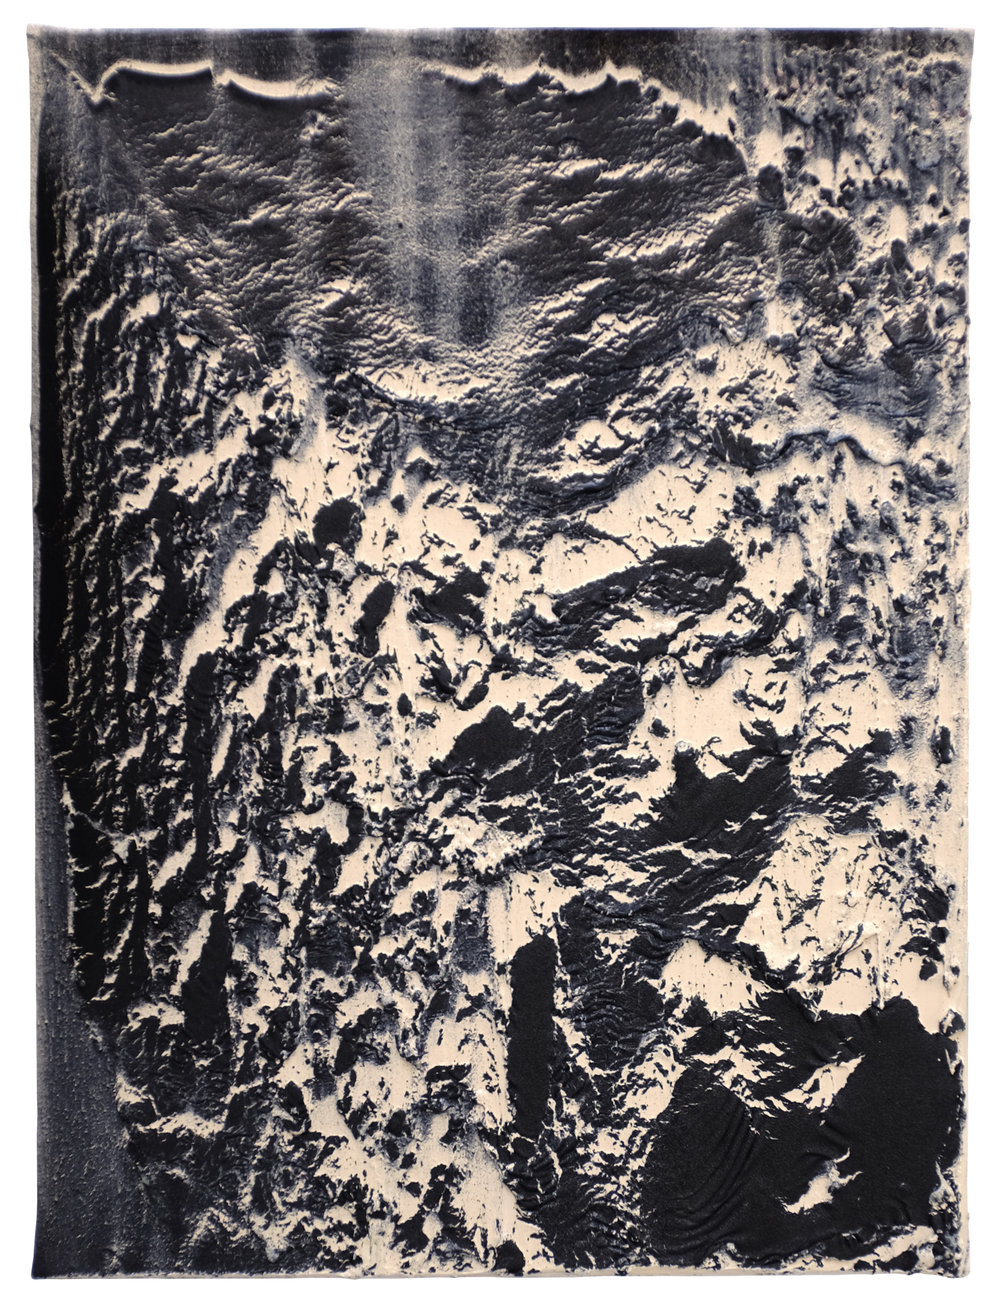 Thomas Fougeirol Collapsing Field, 2018 Mixed media on canvas 40 x 30 cm - 15 3/4 x 11 13/16 in